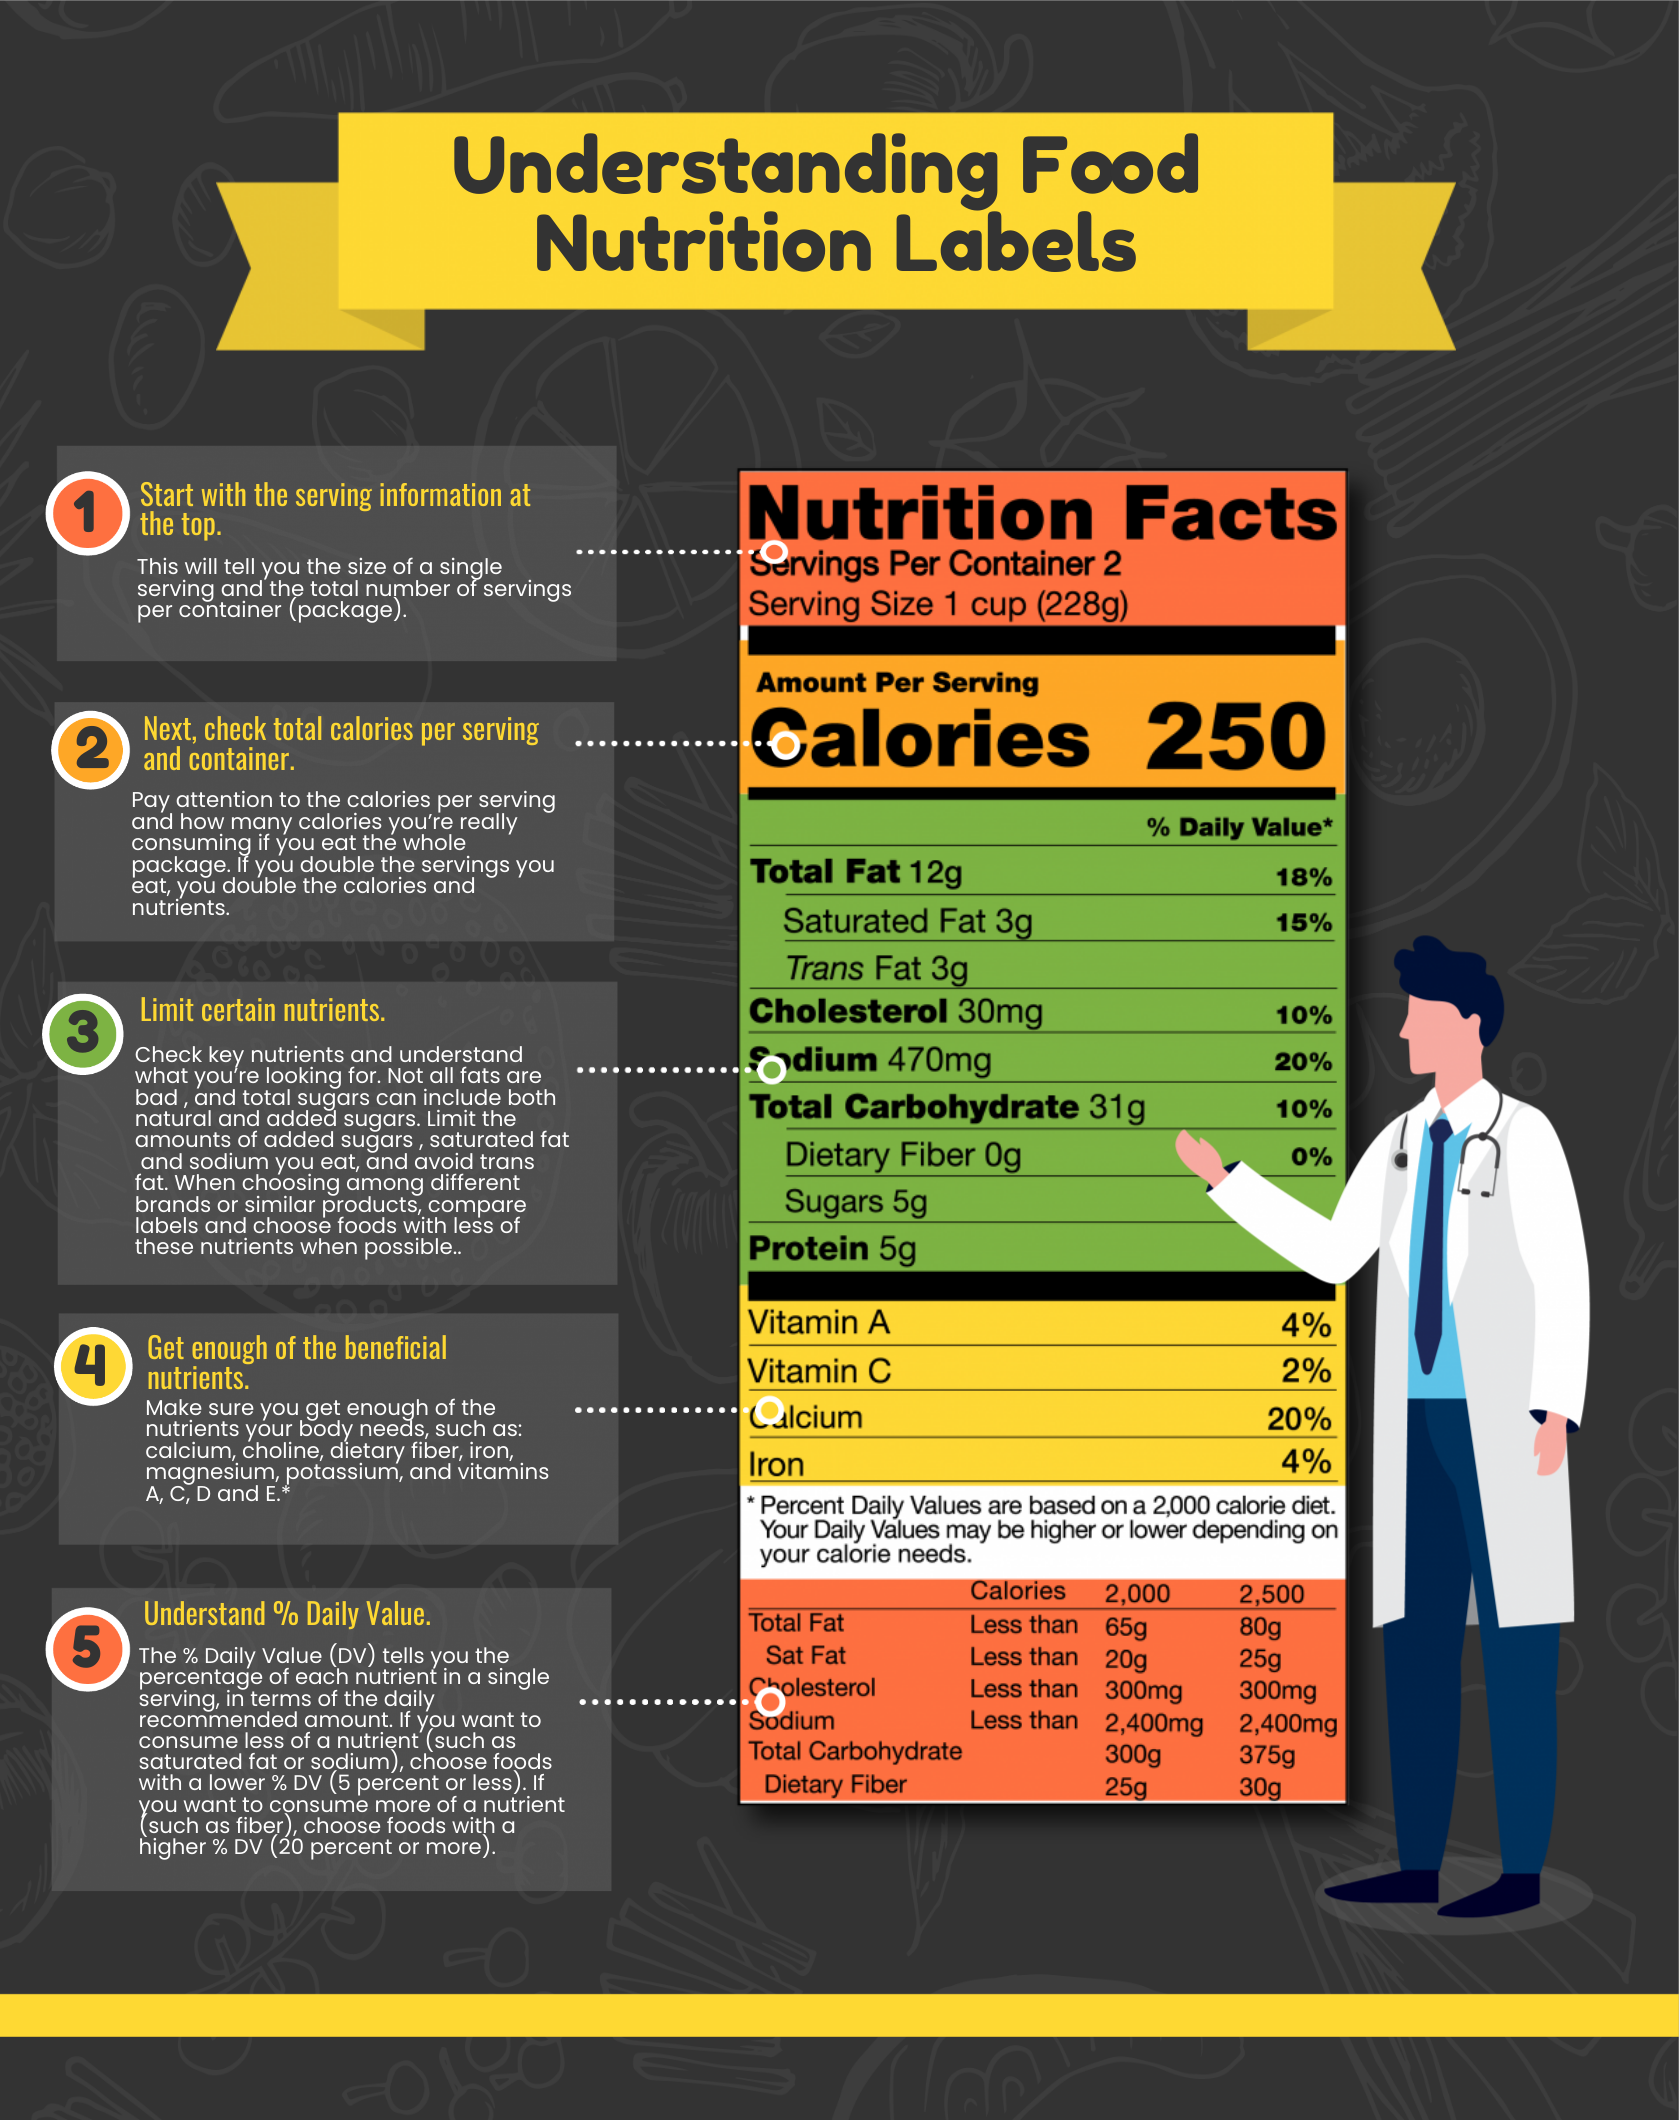 an infographic about nutritional labels.